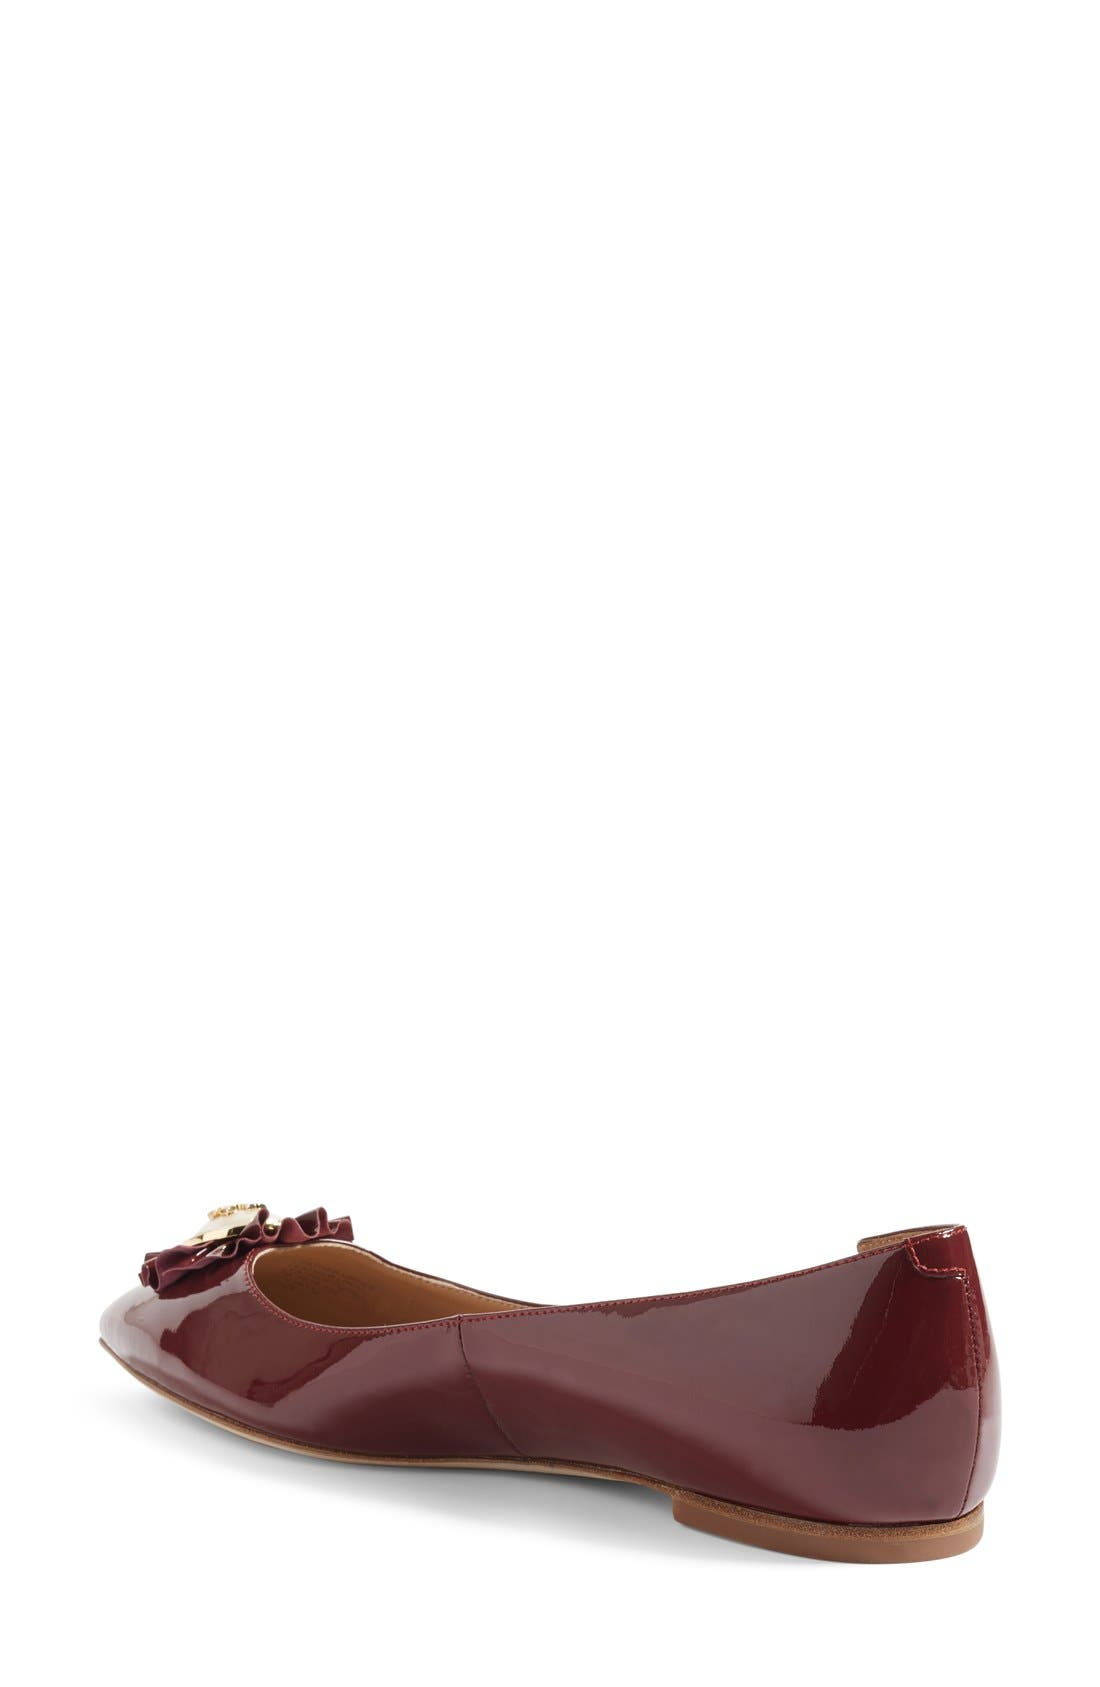 Alternate Image 2  - Tory Burch Melody Pointy Toe Flat (Women)